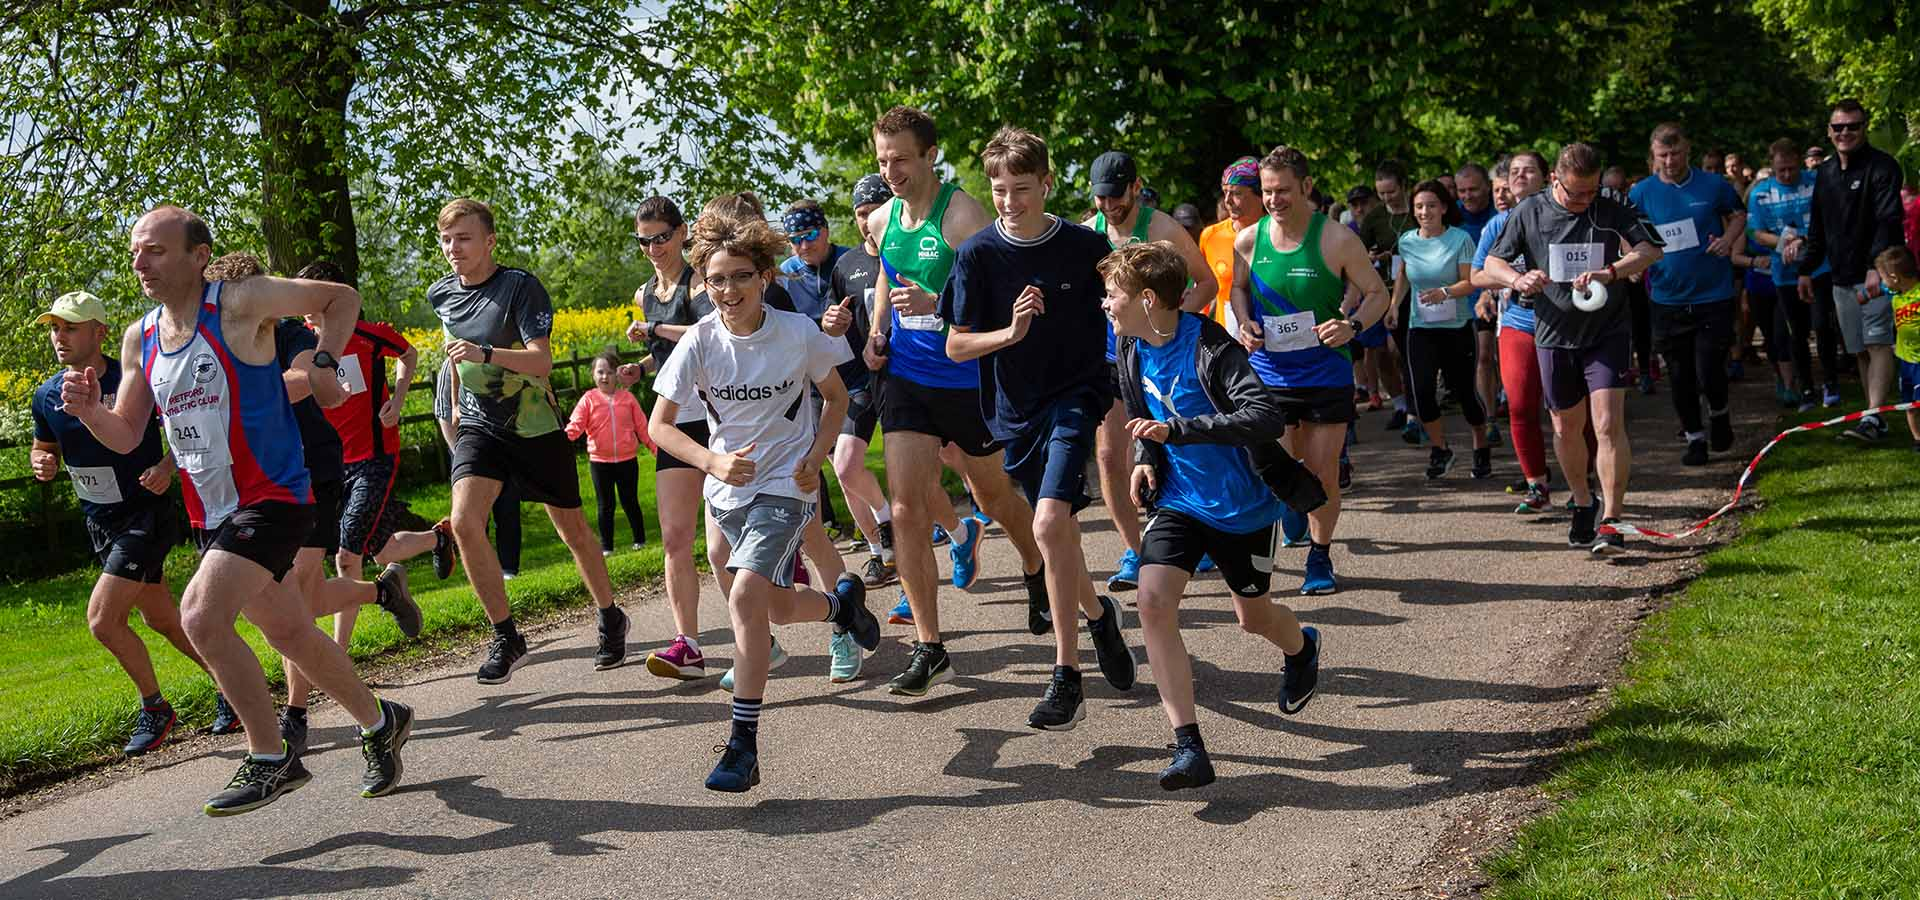 Welbeck Estate 10K Fun Run/Walk